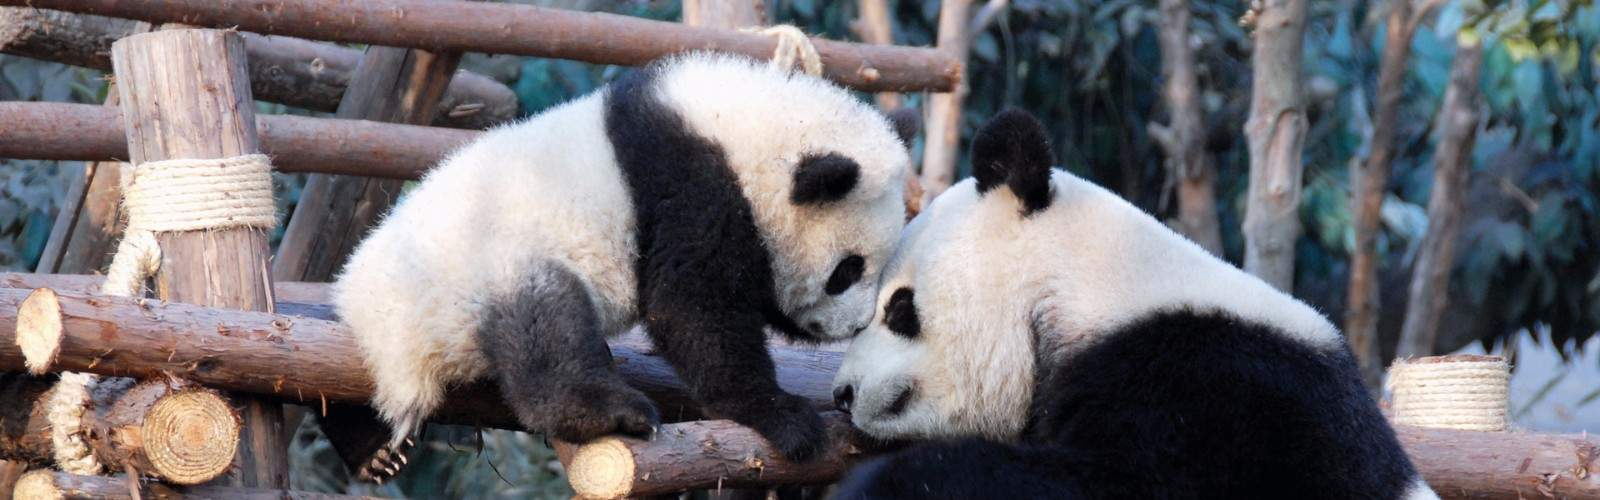 Family Panda Adventure Tour | Wendy Wu Tours